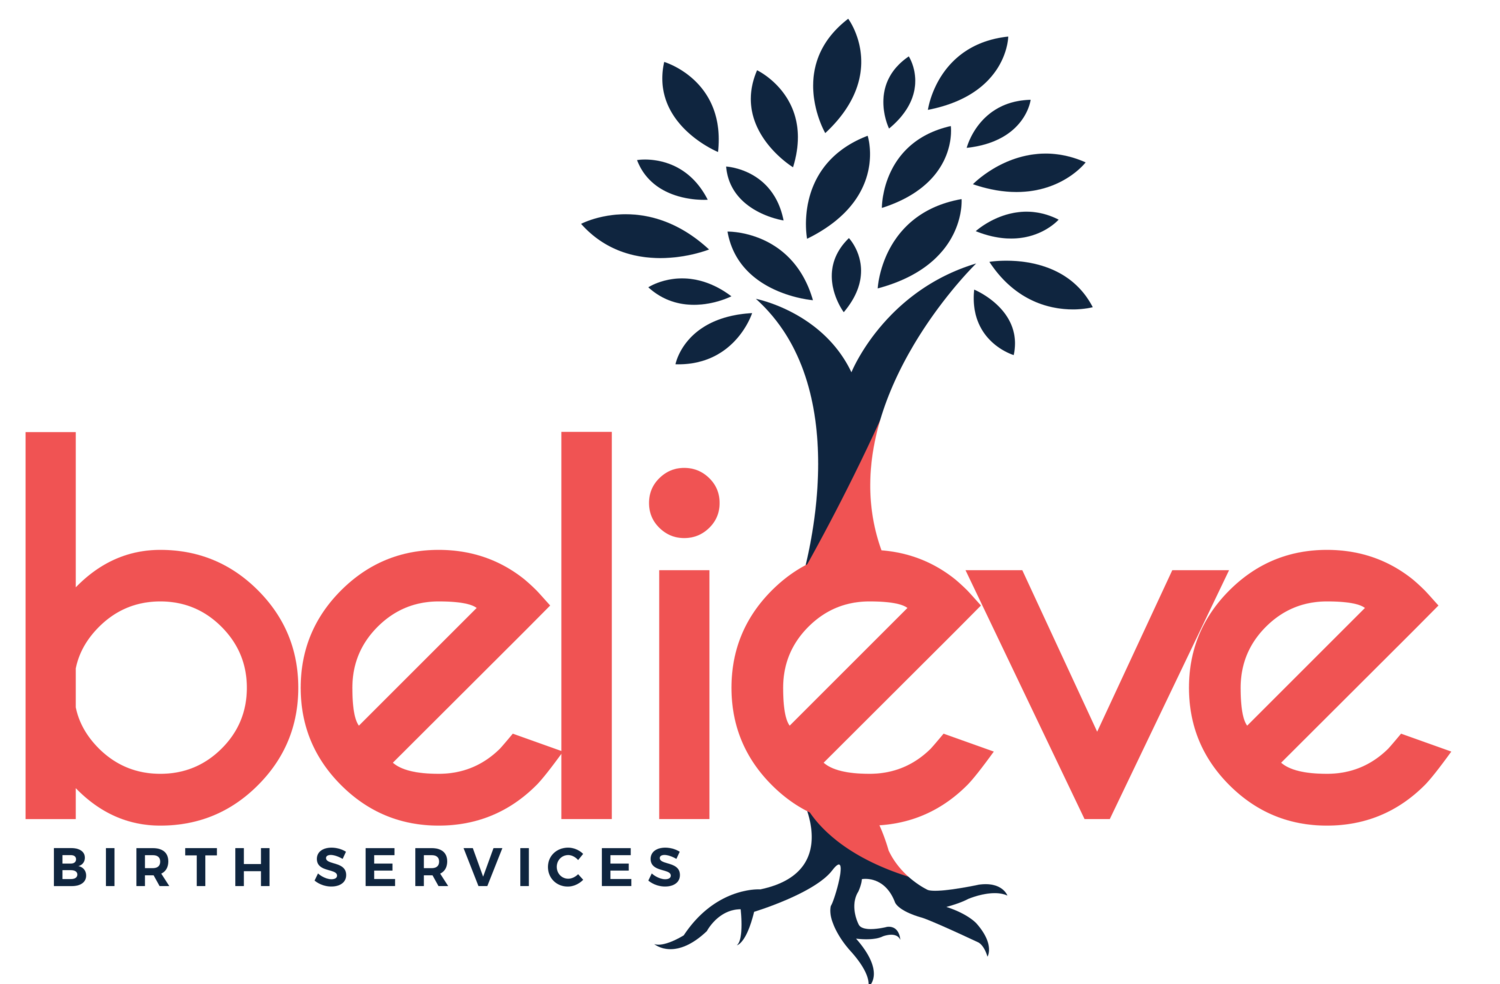 Believe Birth Services